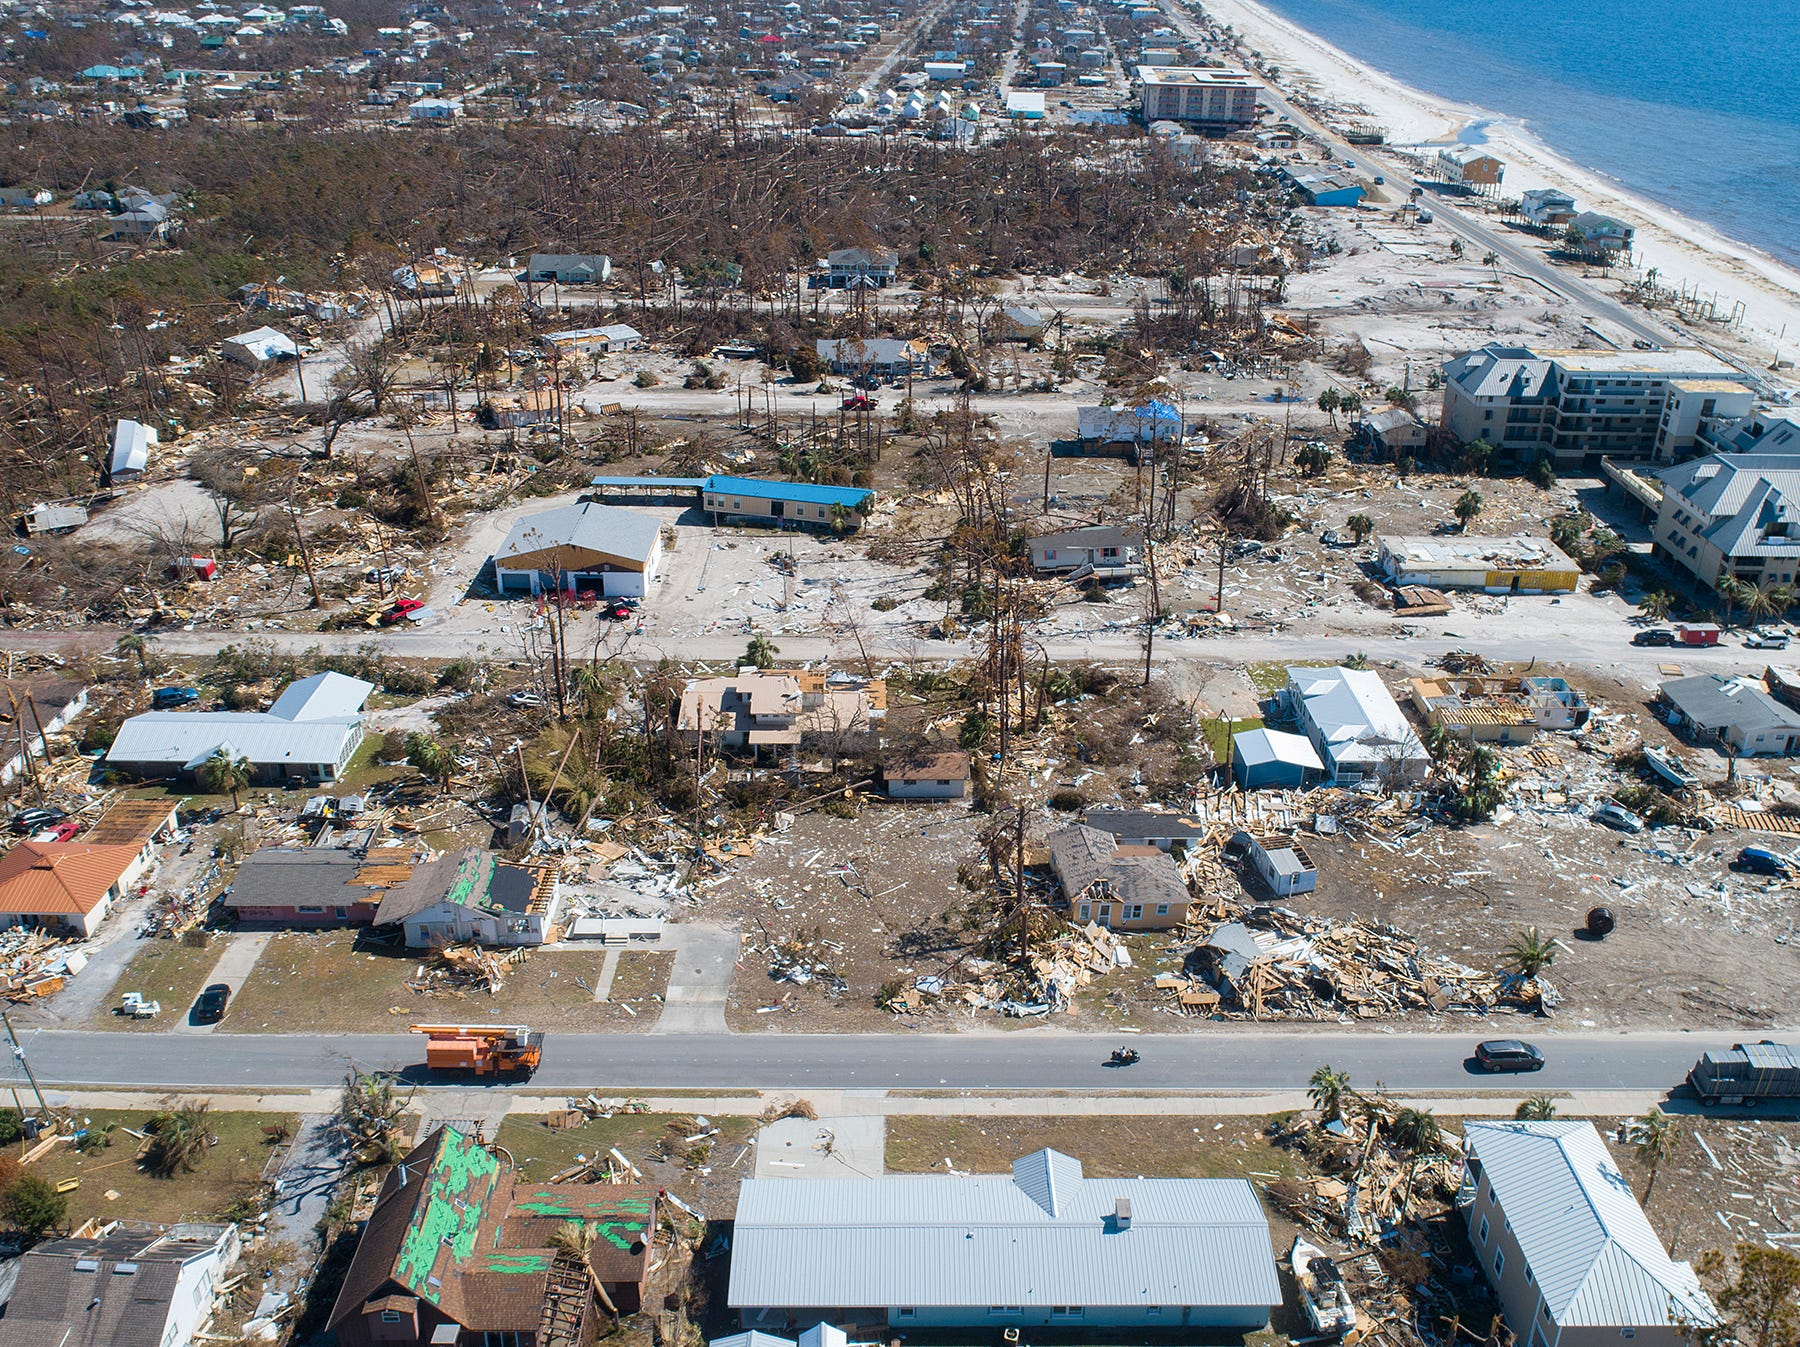 An aerial image shows catastrophic damage Tuesday, Oct. 16, 2018, in Mexico Beach, Florida. Hurricane Michael clobbered city in Florida's Panhandle a week earlier.